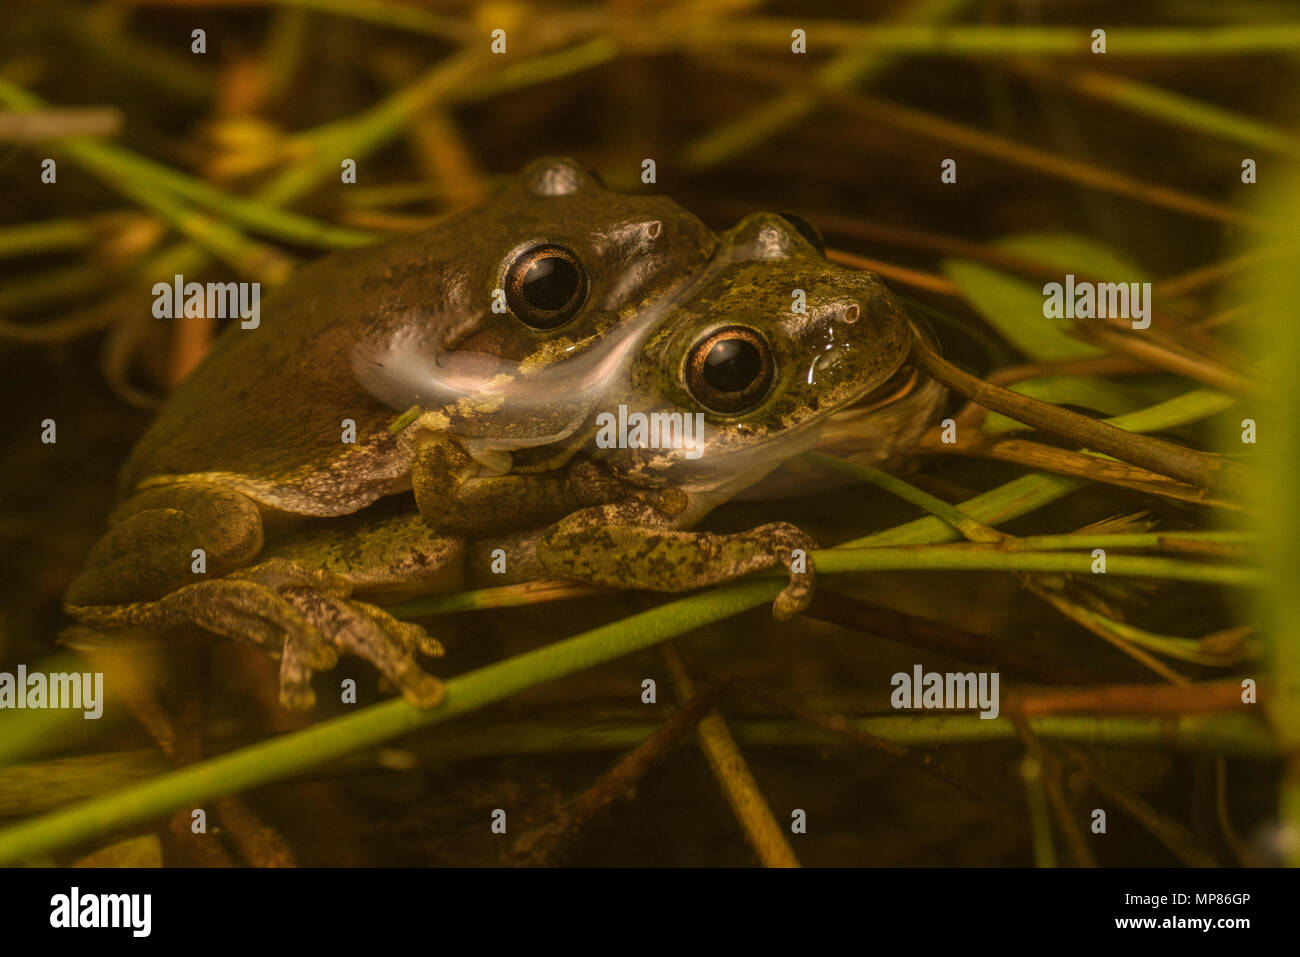 A pair of squirrel tree frogs (Hyla squirrela) in amplexus in a pool of water in the forest of North Carolina, USA. Stock Photo